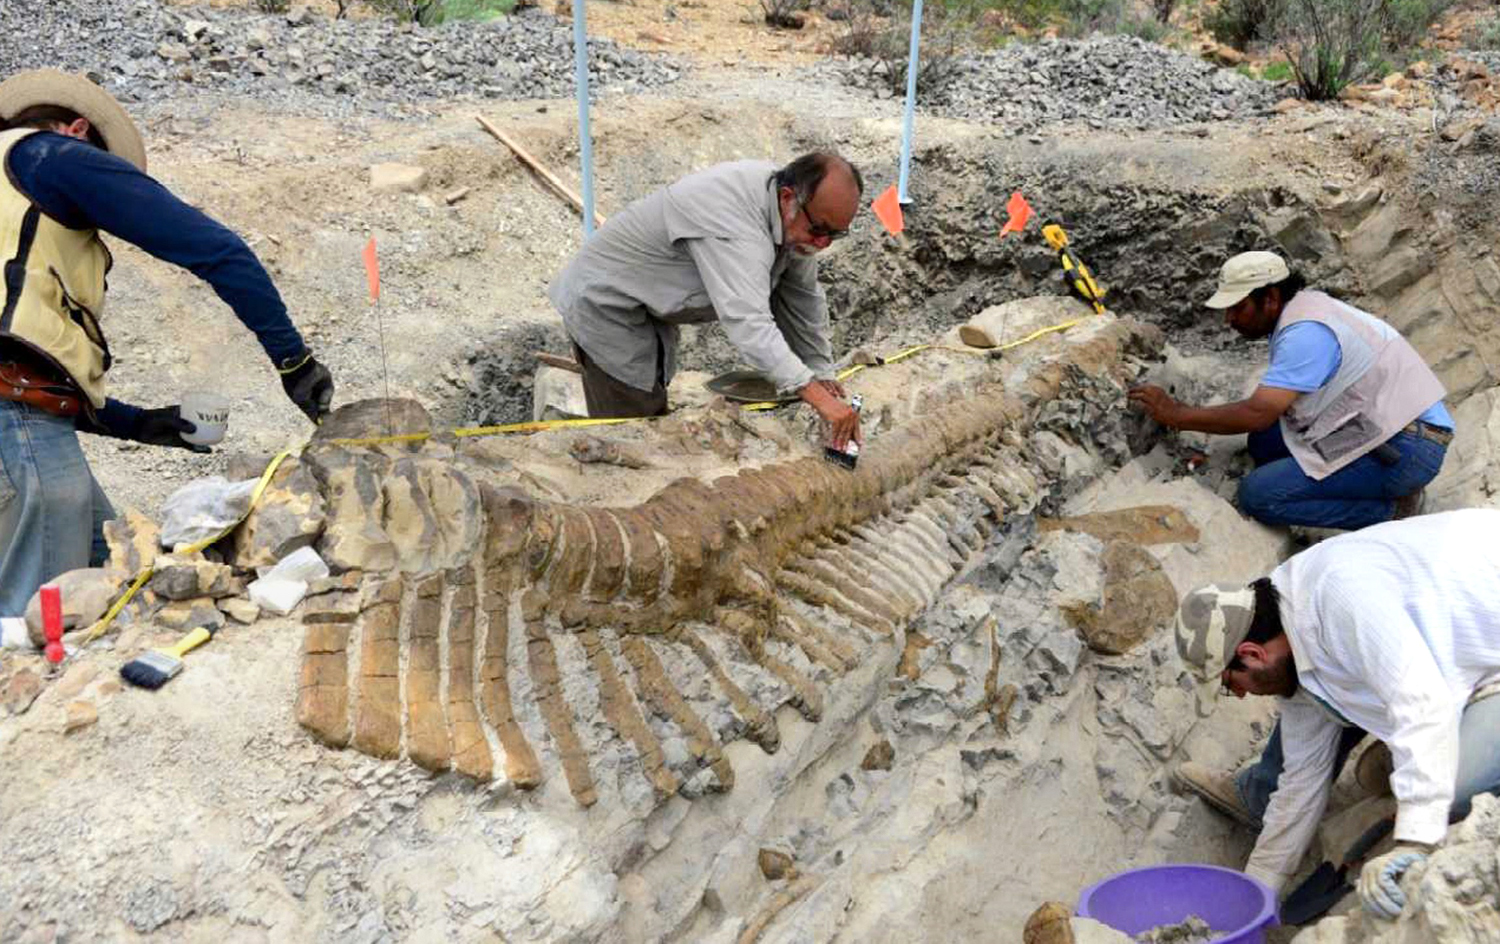 Undated handout picture released by the National Institute of History and Anthropology (INAH) showing paleontologists working in the excavation of a d...